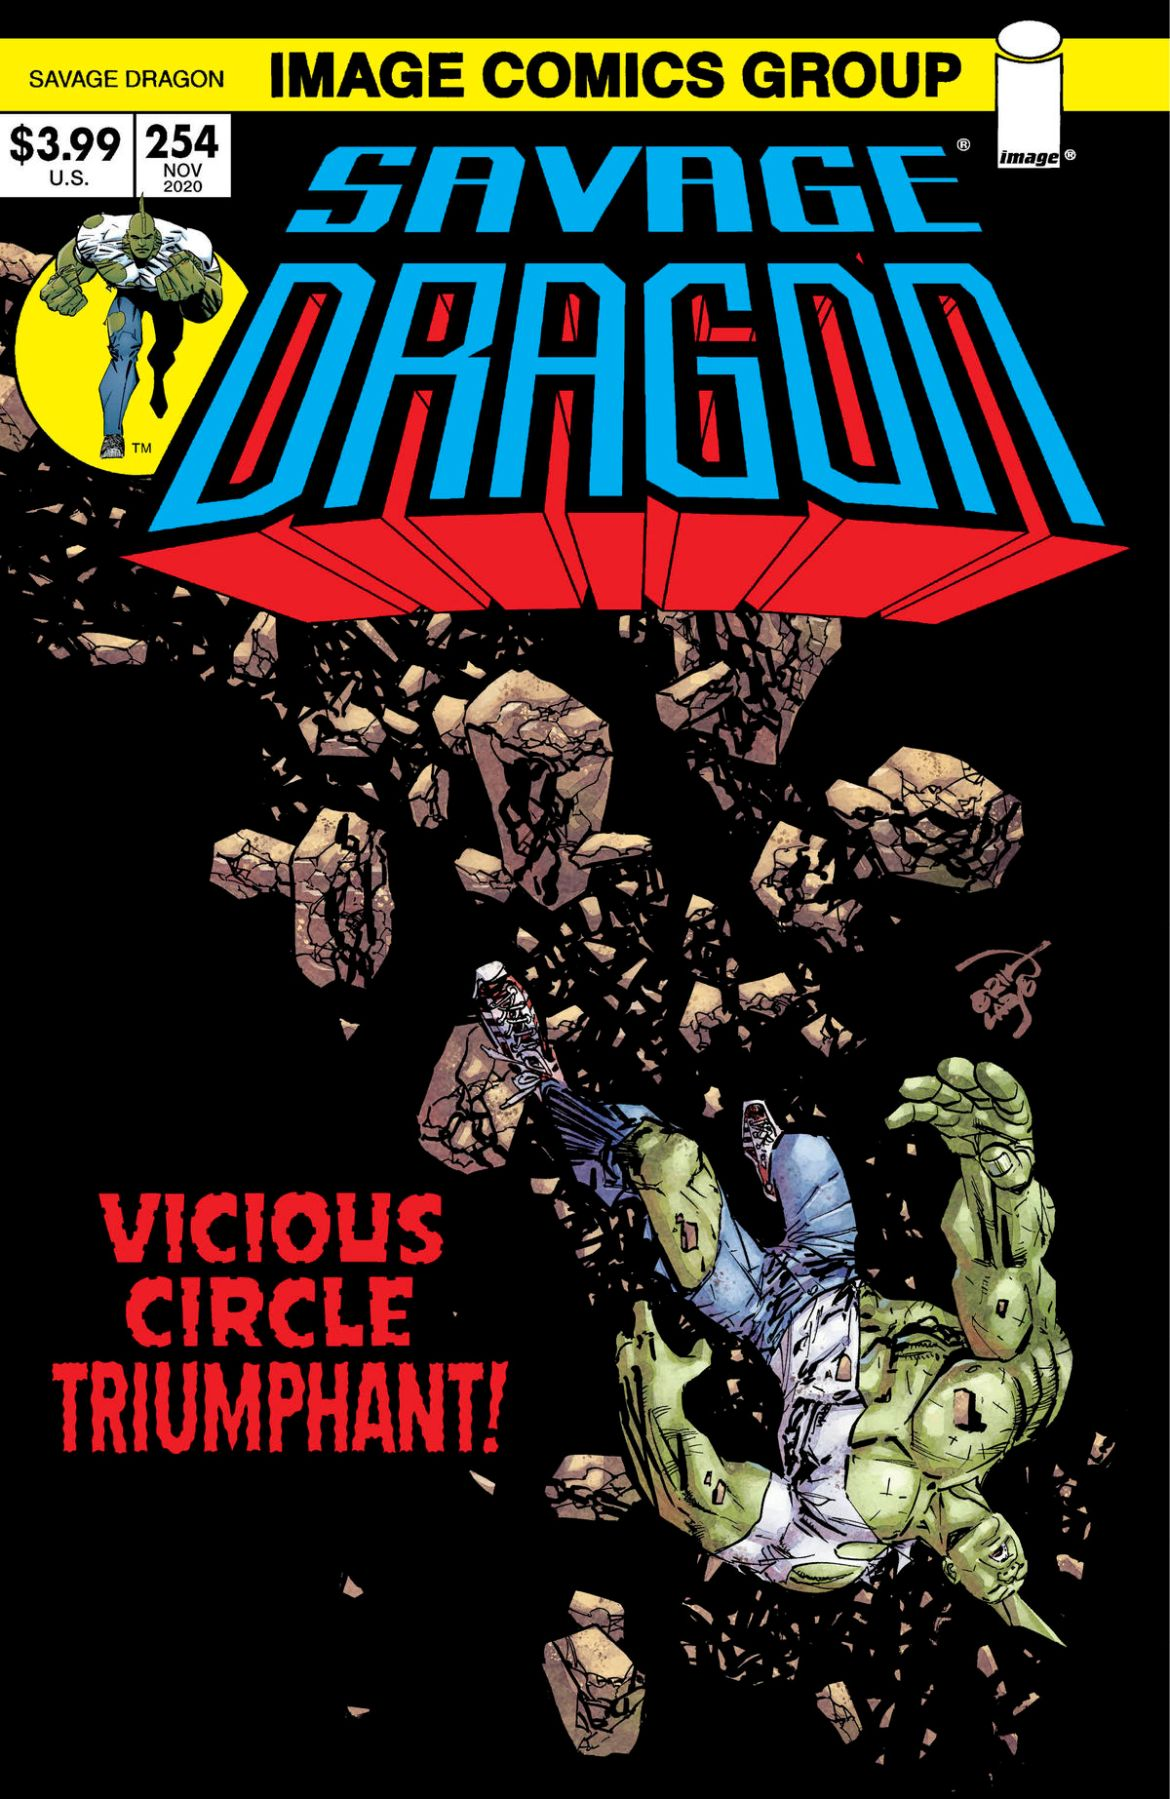 SD_254_70s_c6815a0147f8285e3b5042ebb3626151-2 SAVAGE DRAGON #254-256 to feature retro style variant covers